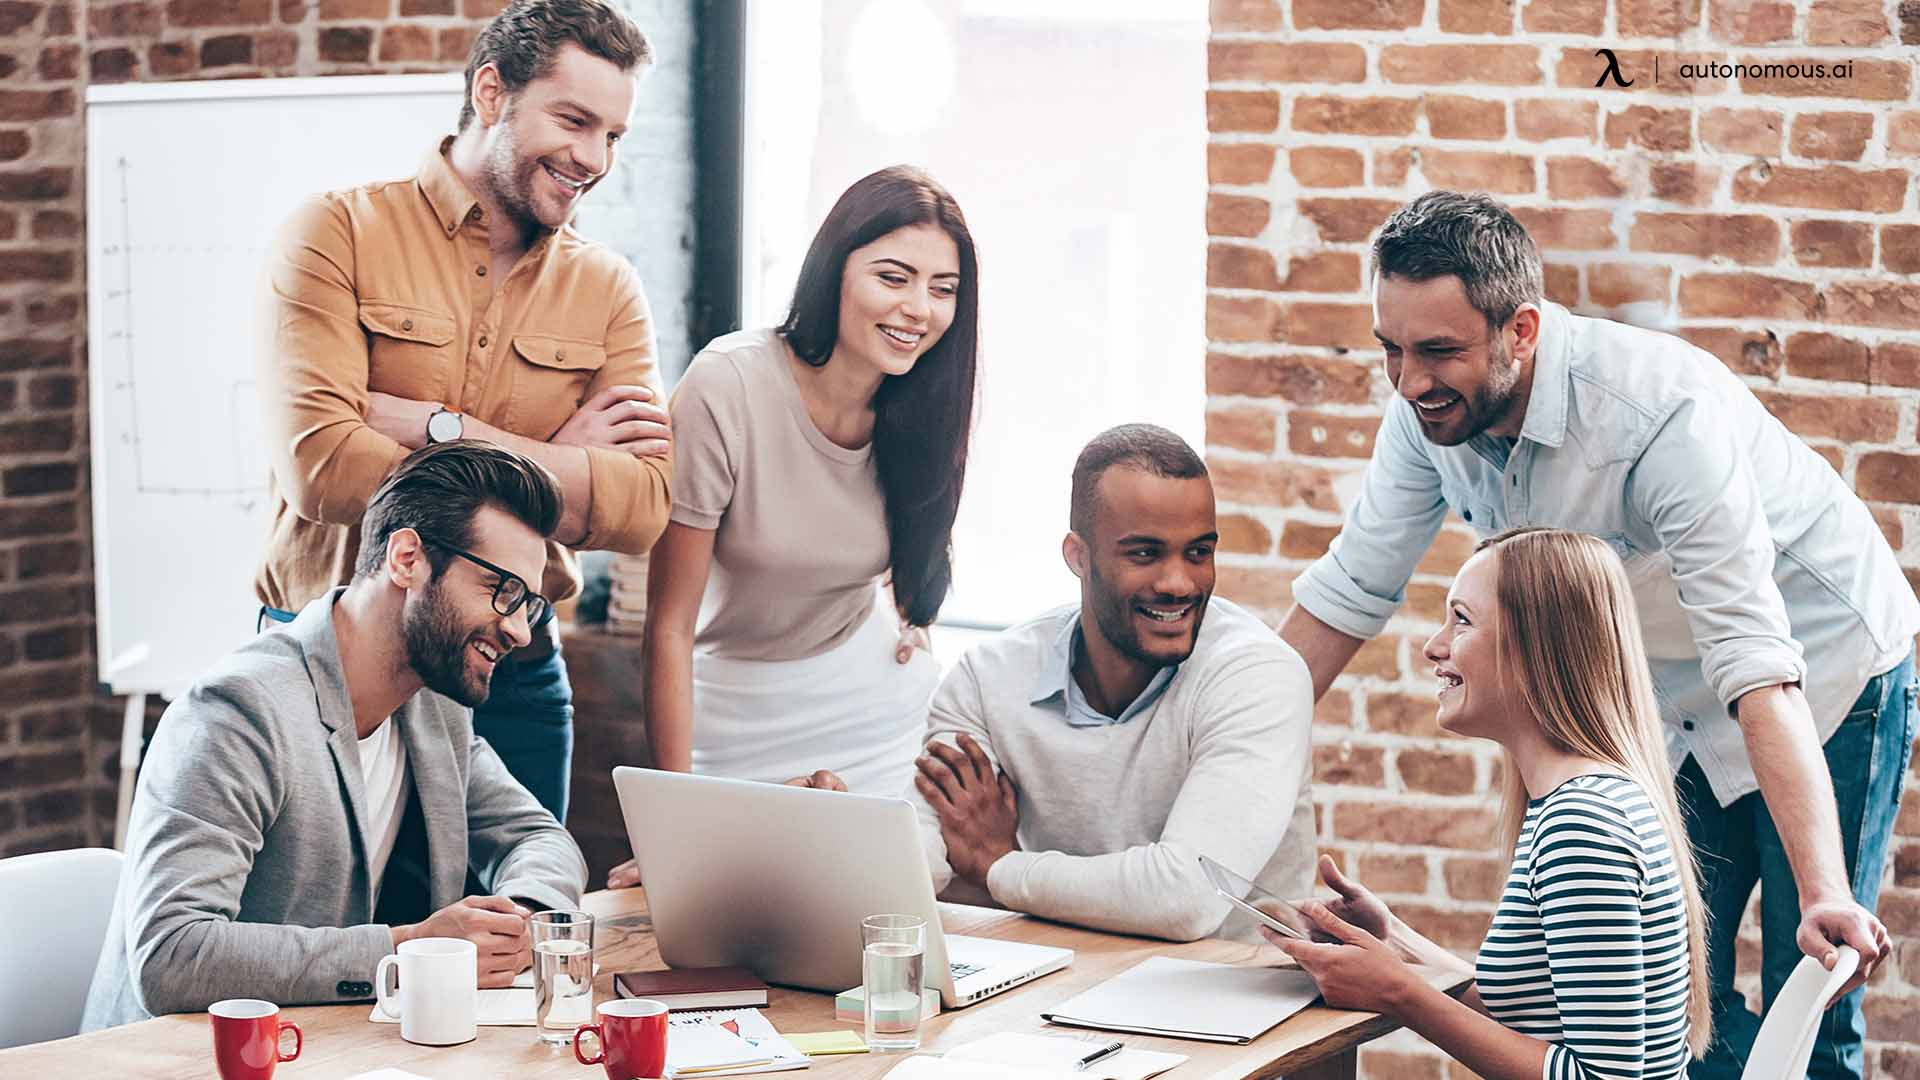 Benefits of Respectful Interactions in the Workplace